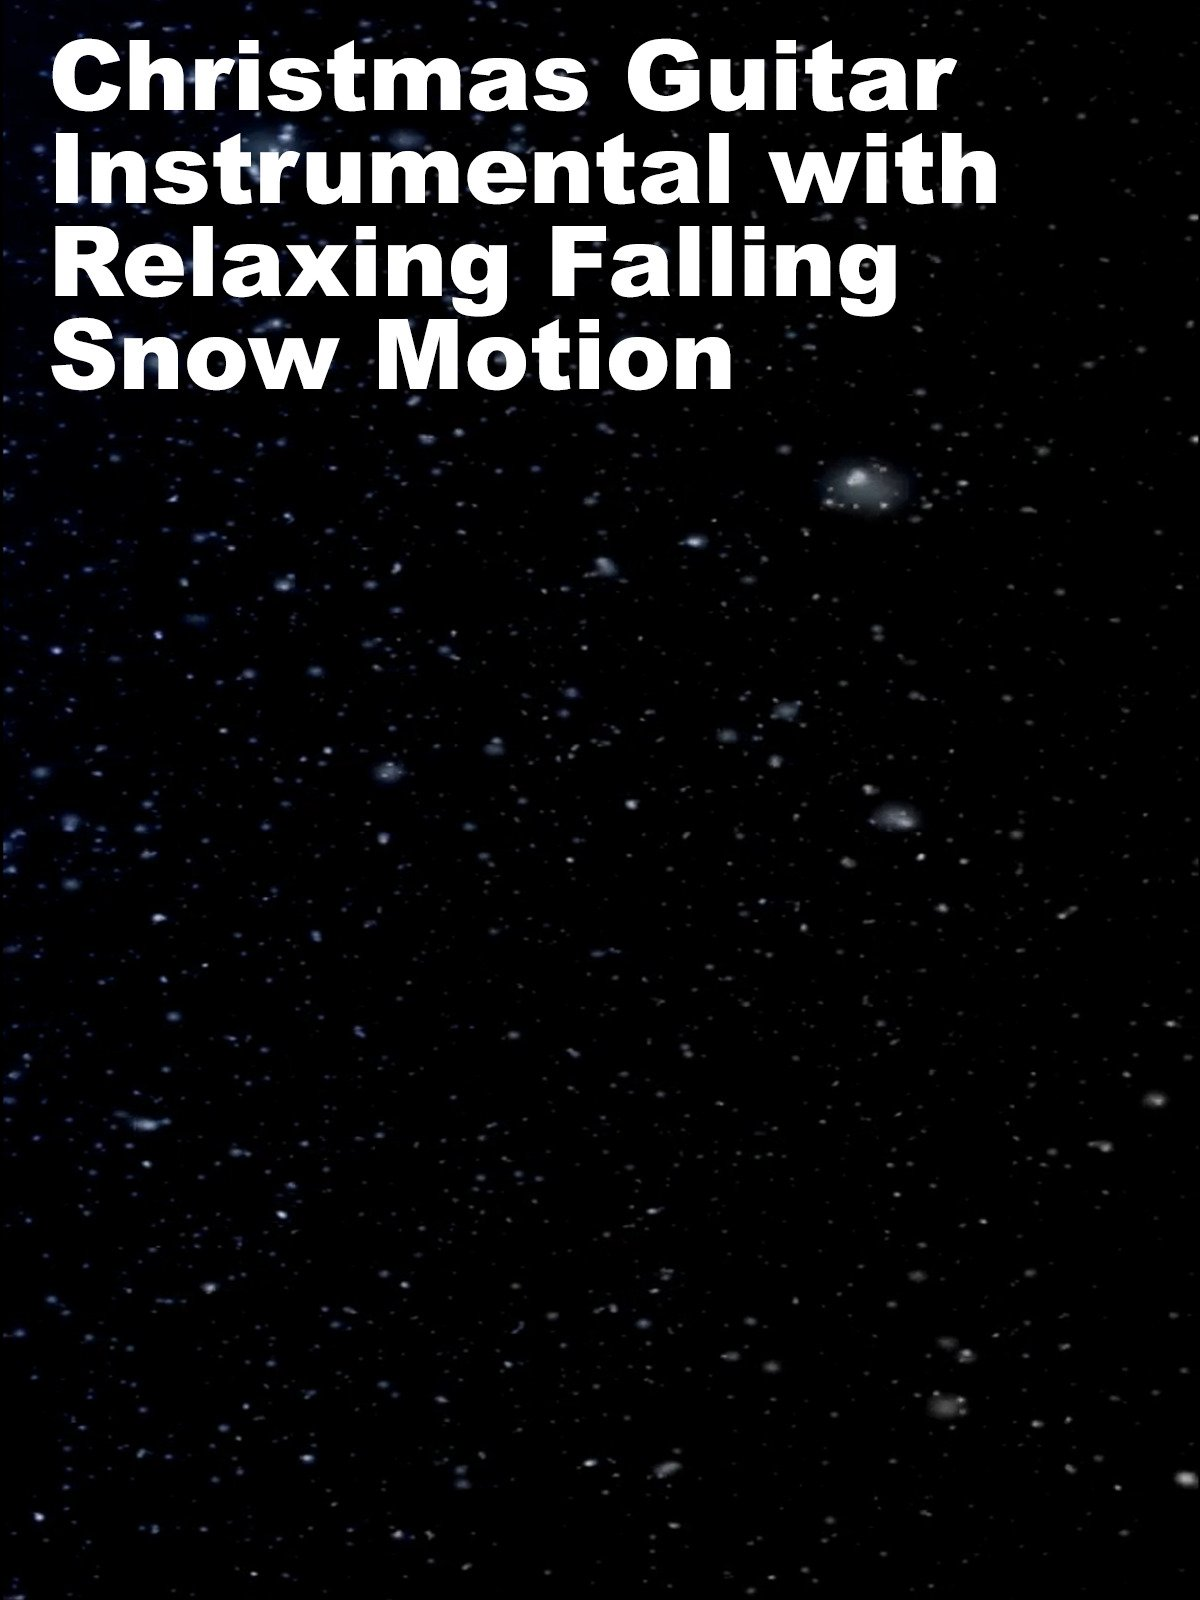 Christmas Guitar Instrumental with Relaxing Falling Snow Motion